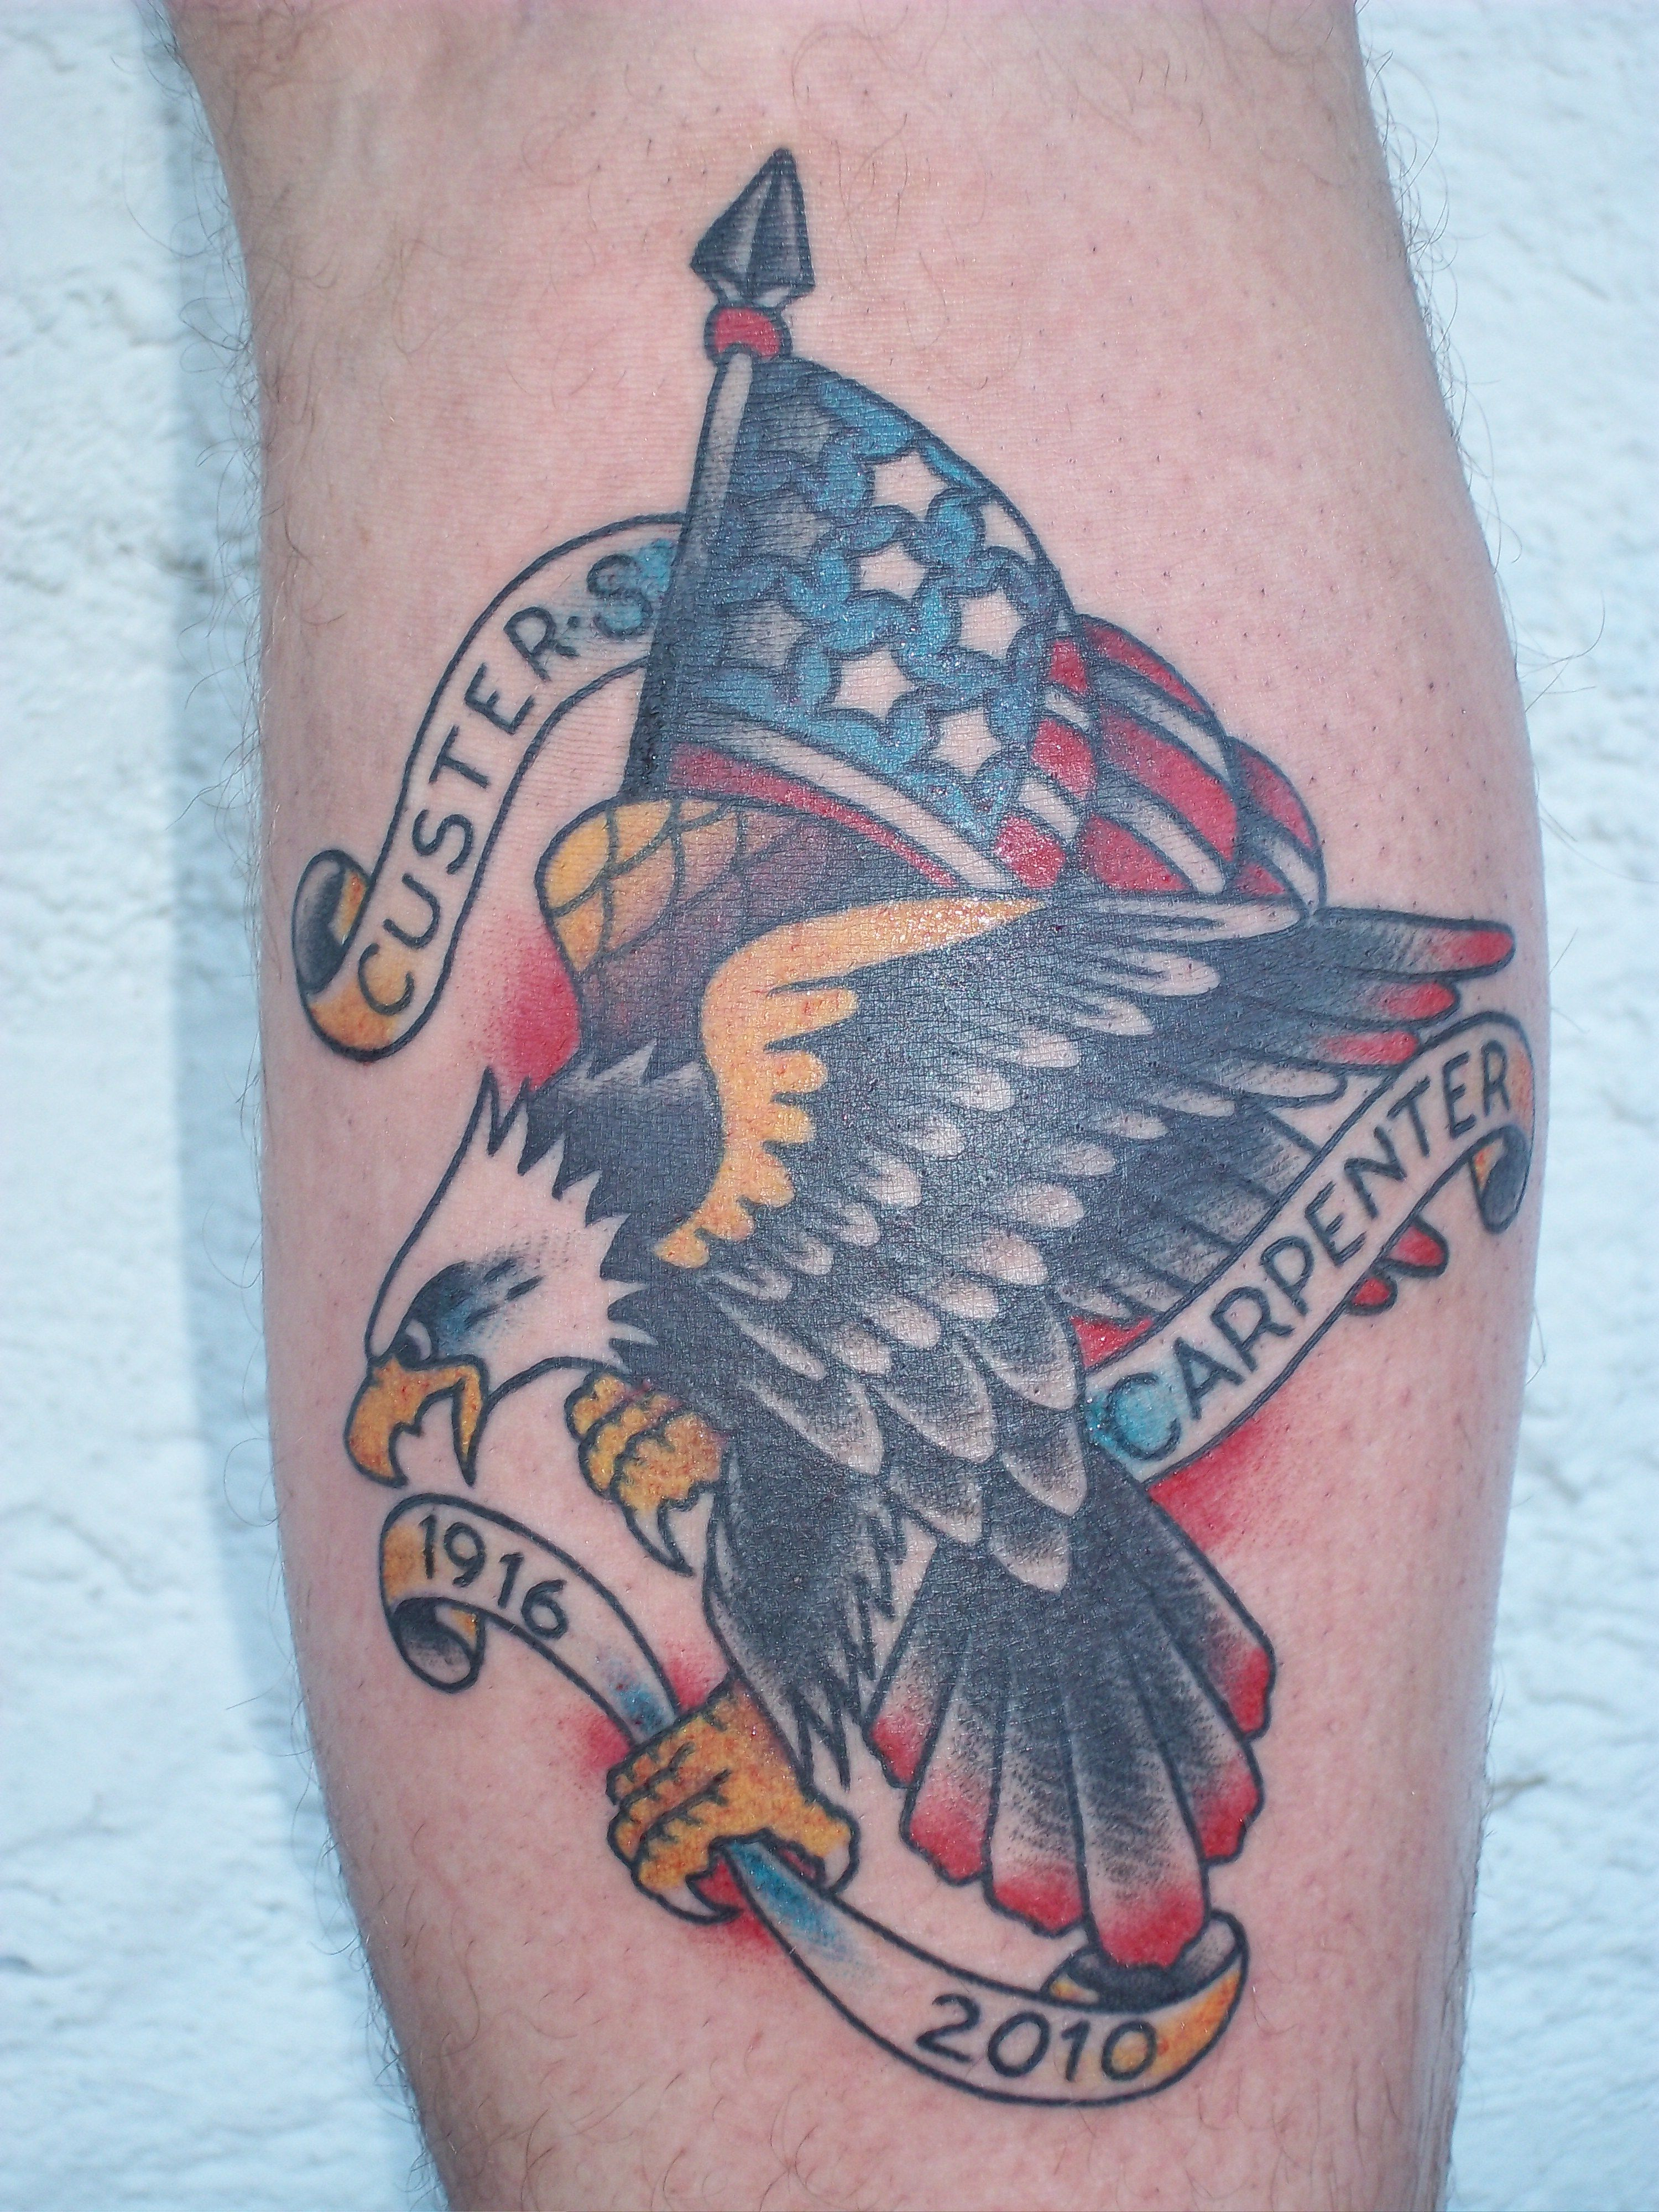 American eagle tattoos high quality photos and flash - Traditional Eagle And Flag Tattoos Tattoos Traditional